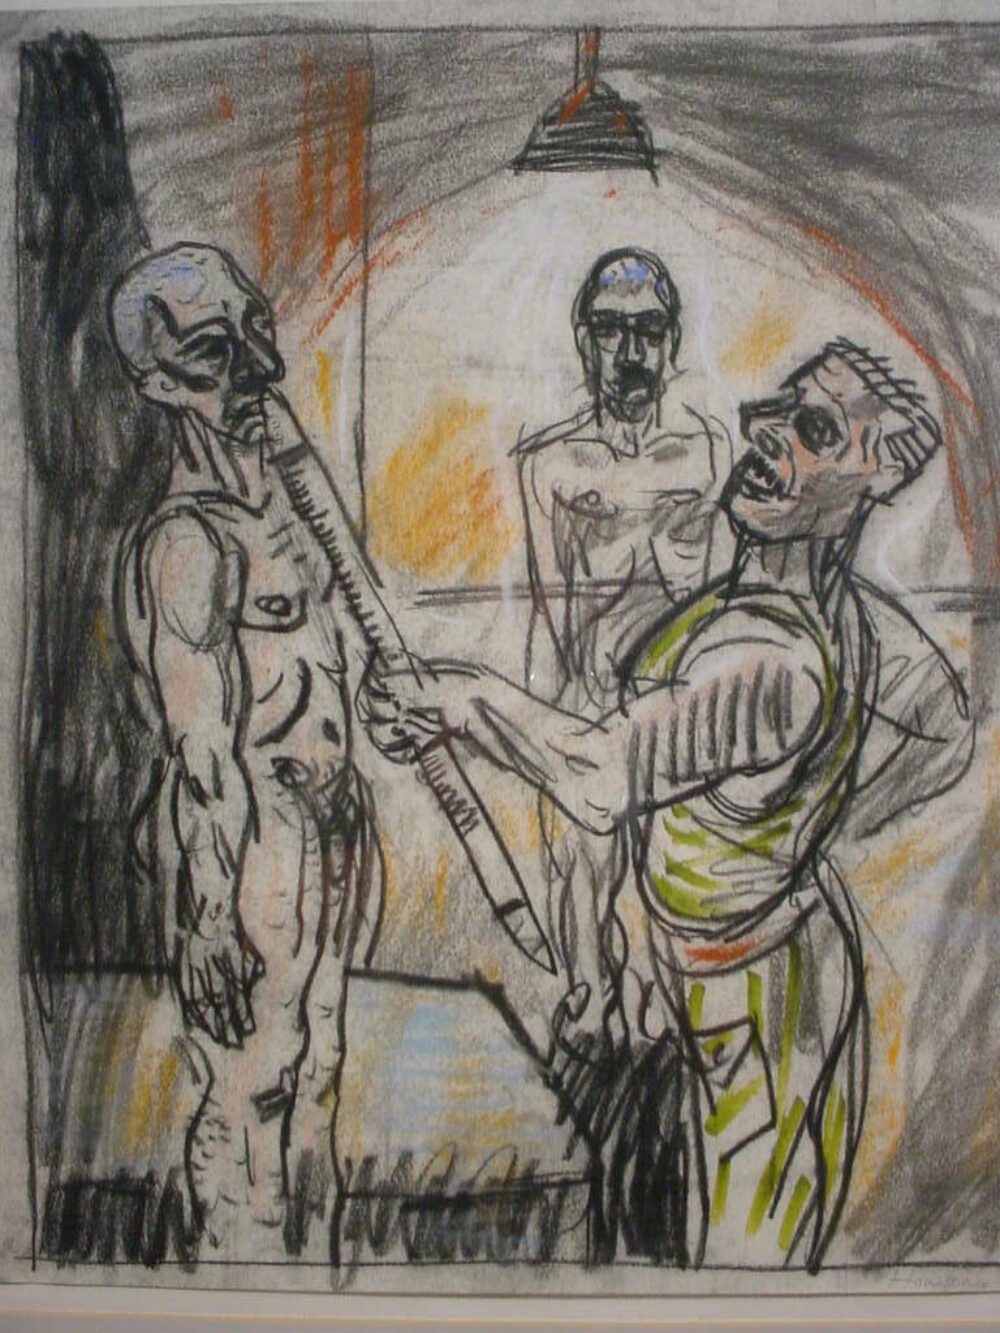 Peter Howson - Features in Radical Drawing